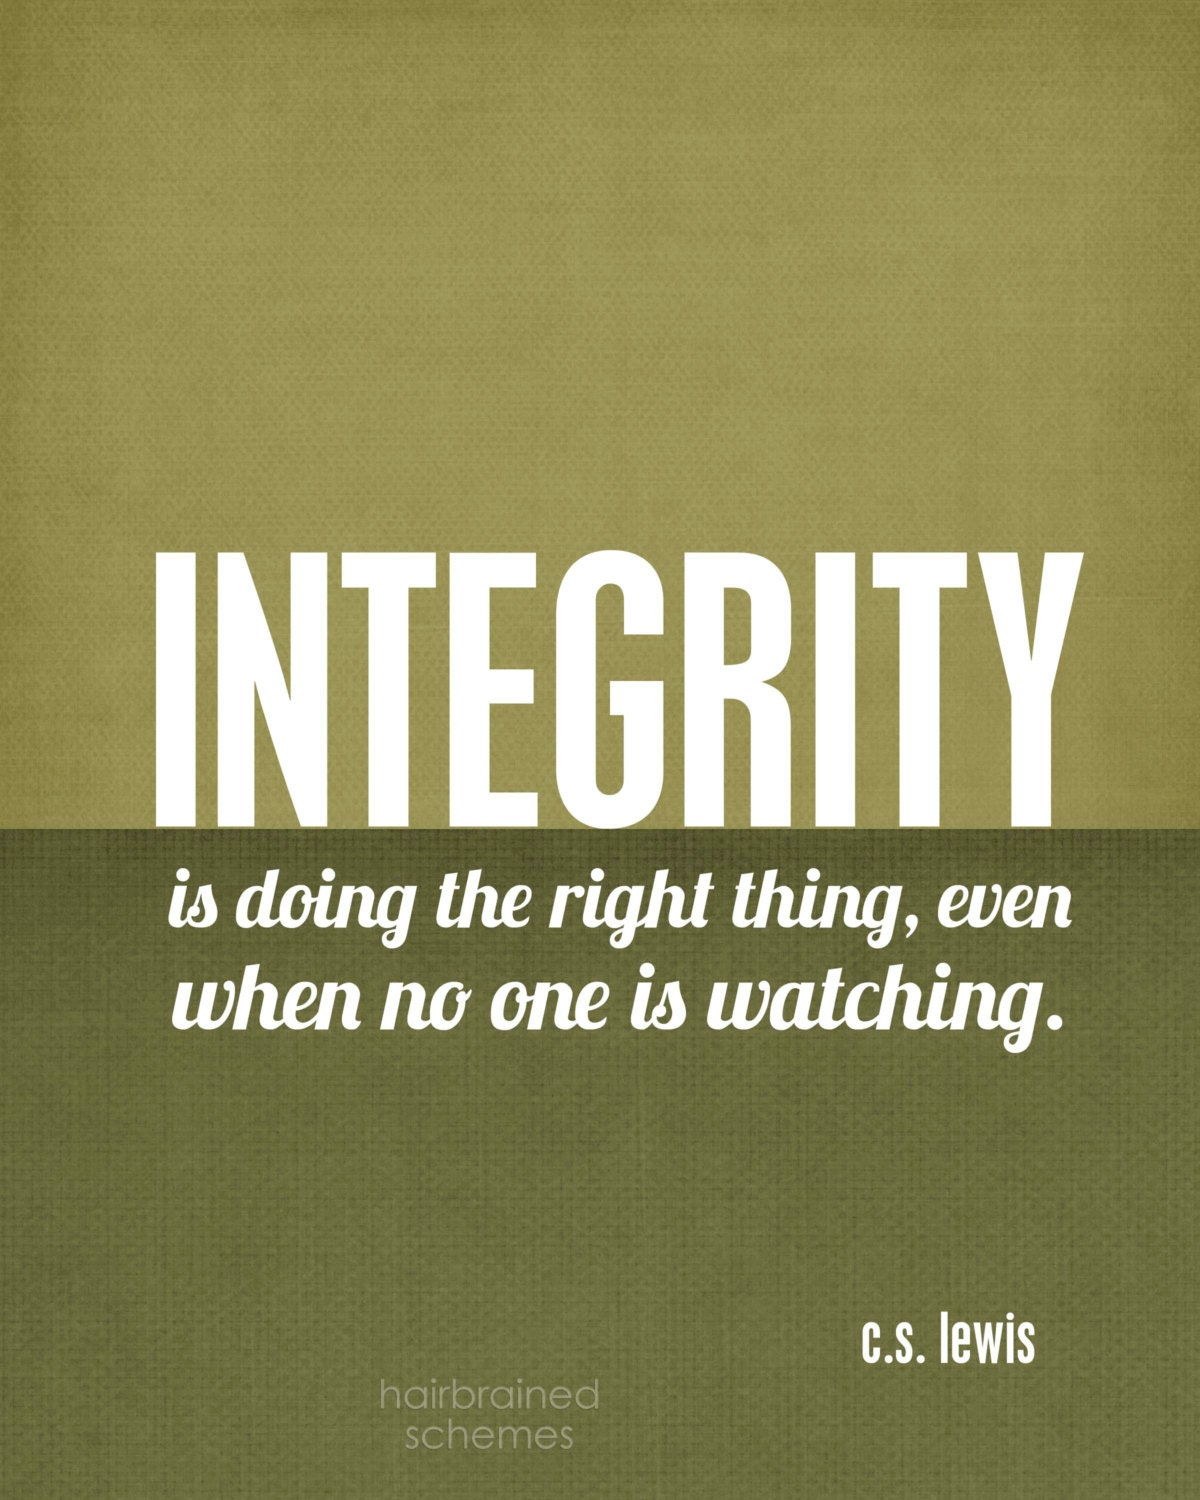 Integrity Quotes That Raise Your Character Upward